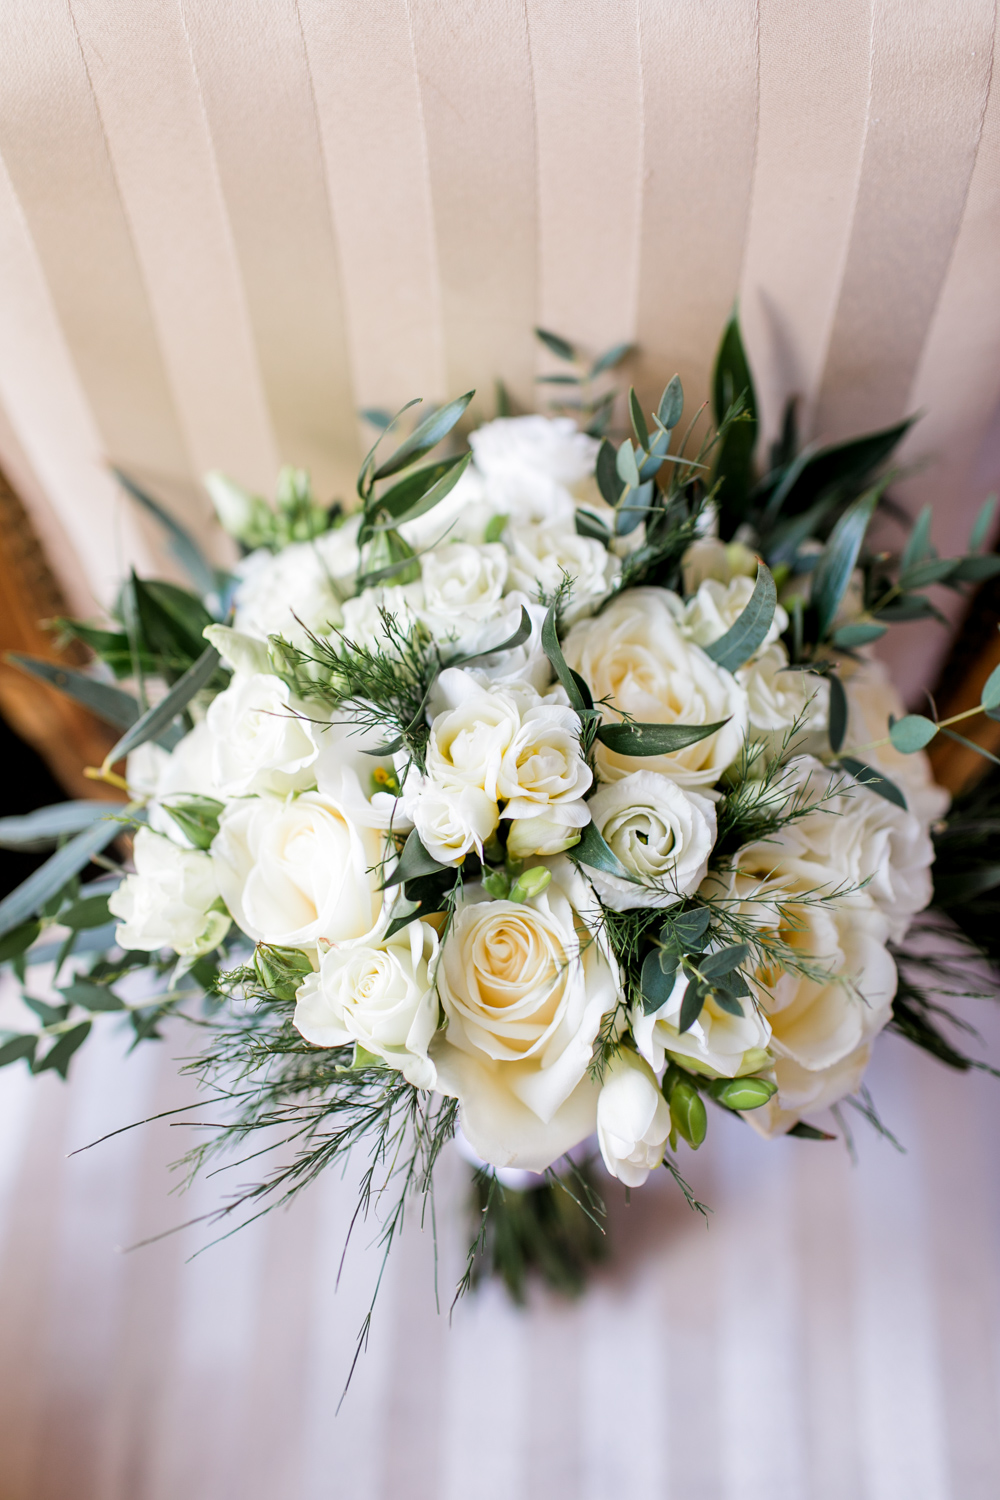 wedding flowers made out of white roses and white buttercups on a vintage chair